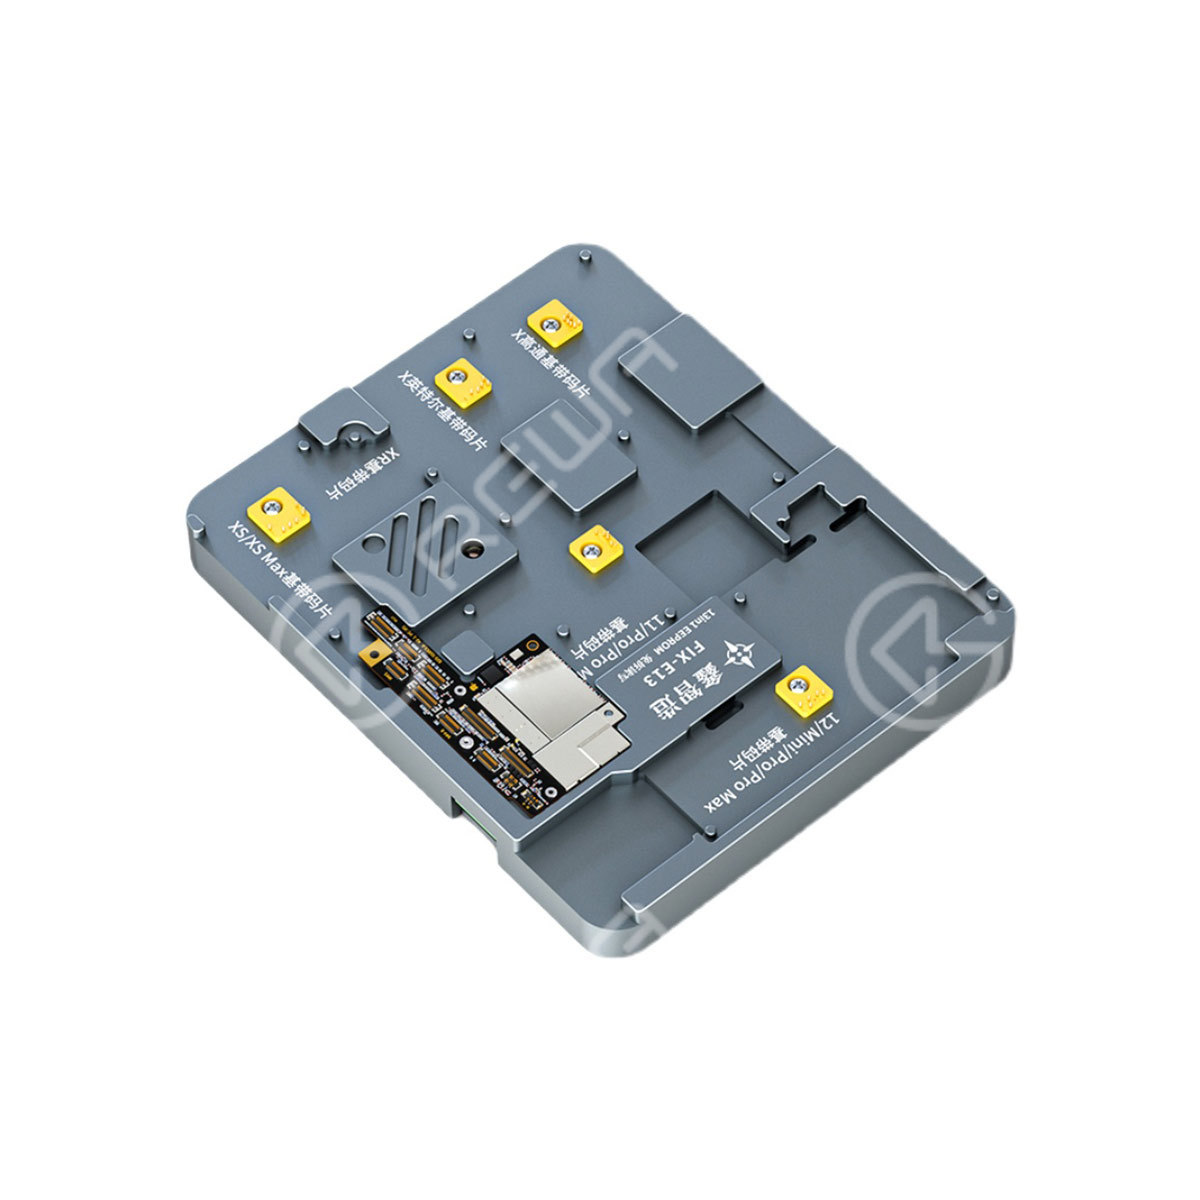 FIX-E13 13 in 1 Baseband EEPROM Chip Read/Write Programmer For iPhone X-12 Pro Max